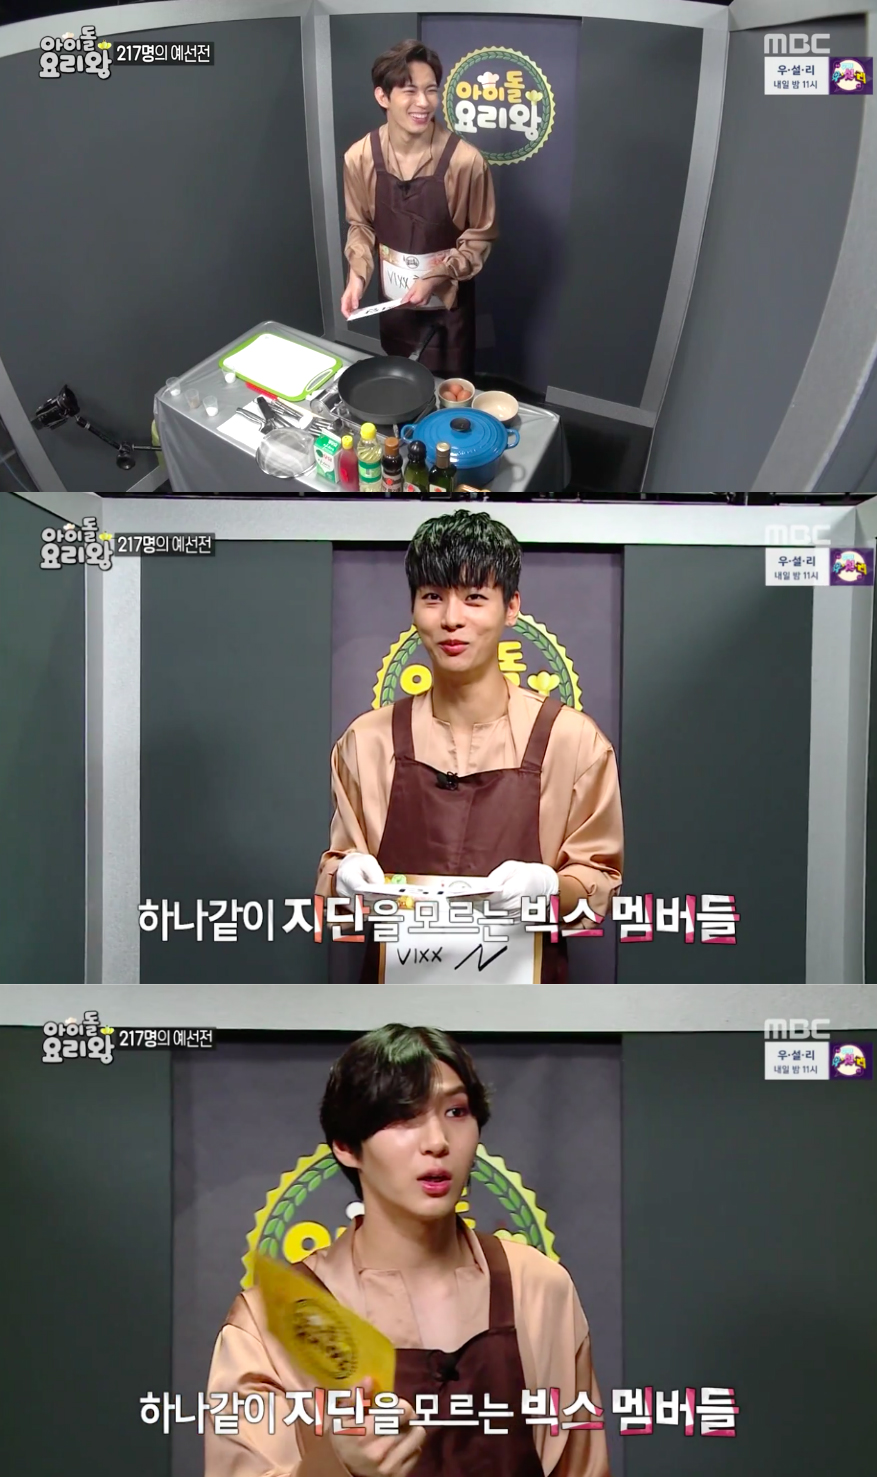 vixx idol chef king 1